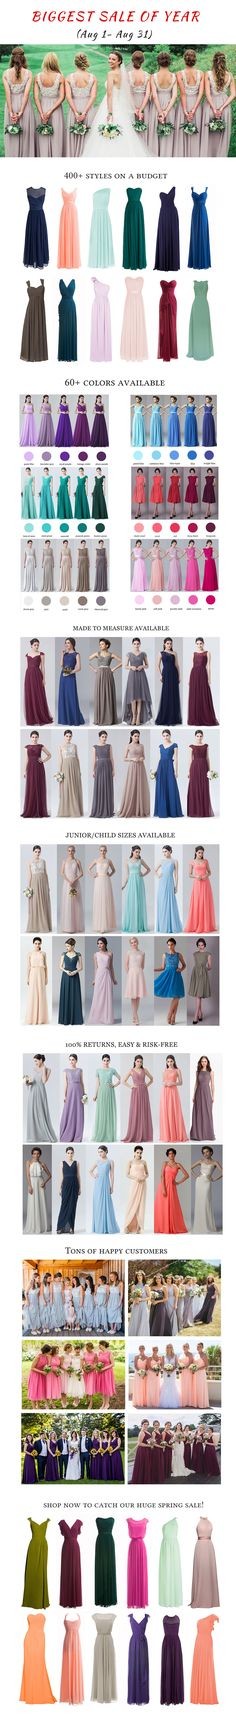 Crazy Summer Sale on ALL FHFH Bridesmaid Dresses! ONLY IN AUGUST! https://twitter.com/faefmgaifnae/status/895102947775750144